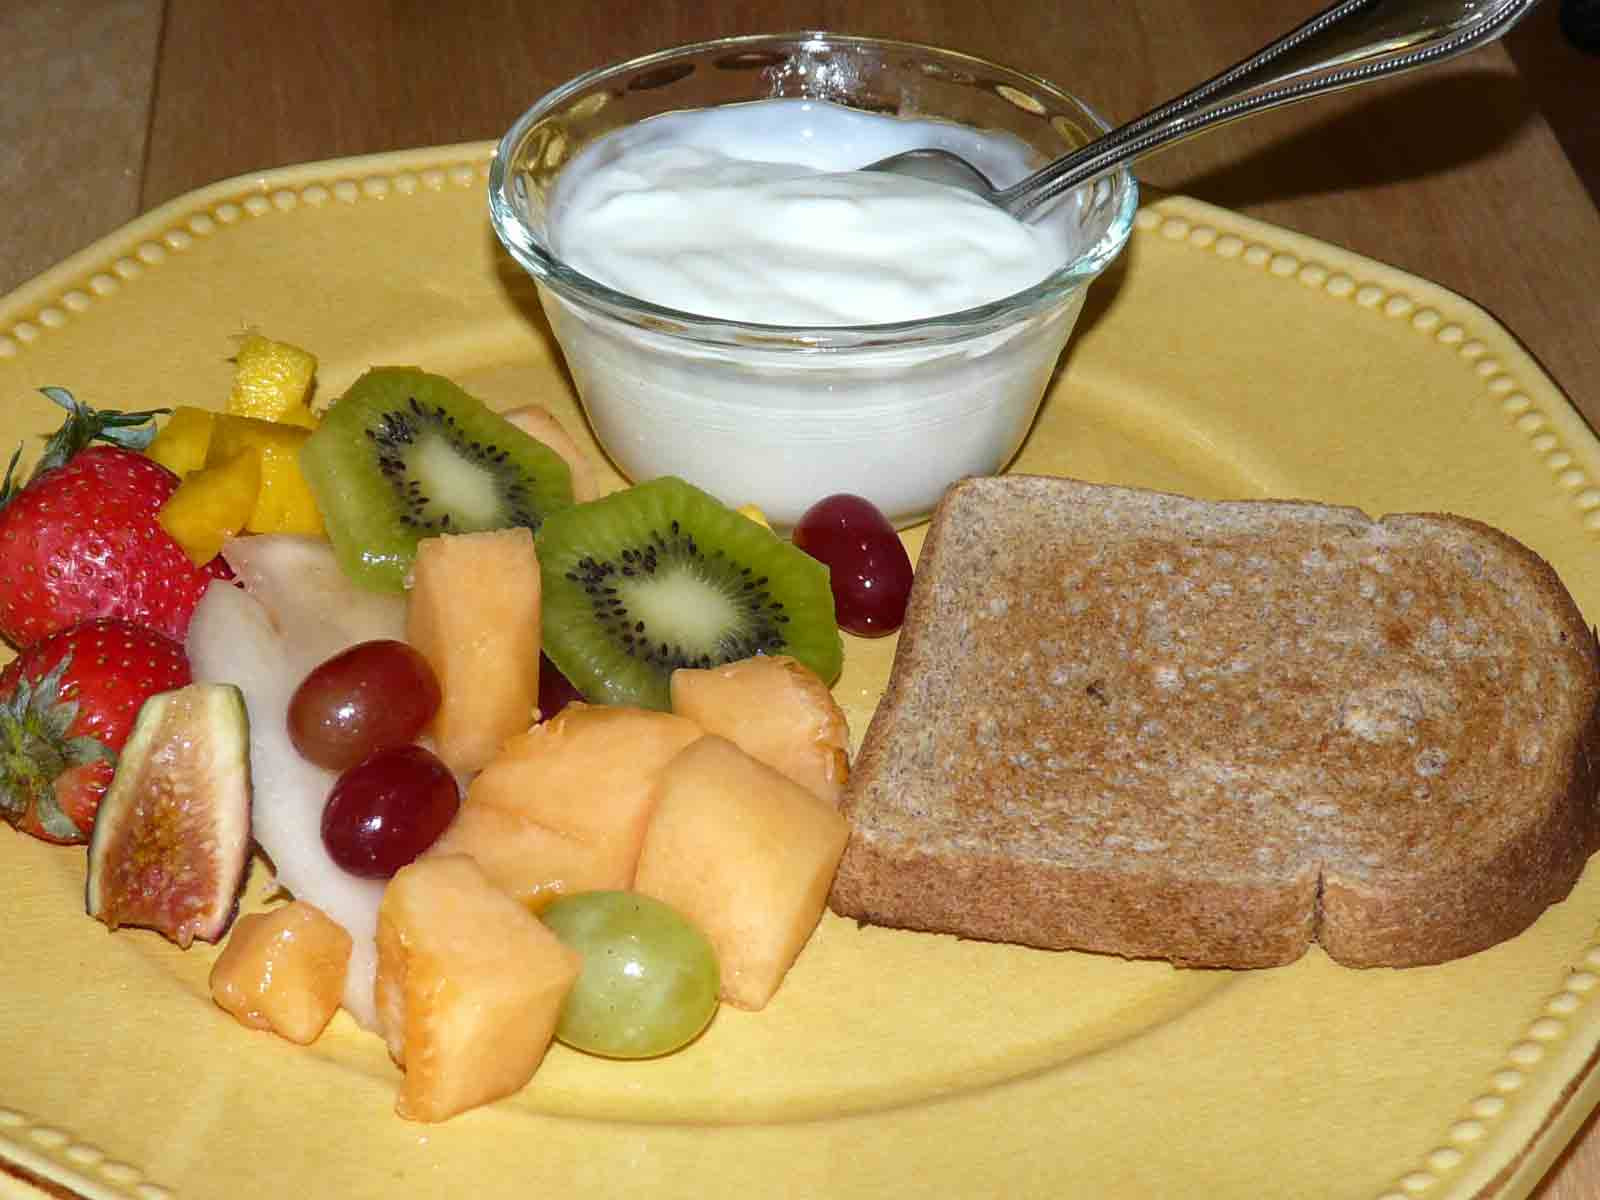 Healthy Foods For Breakfast  Food and Health munications